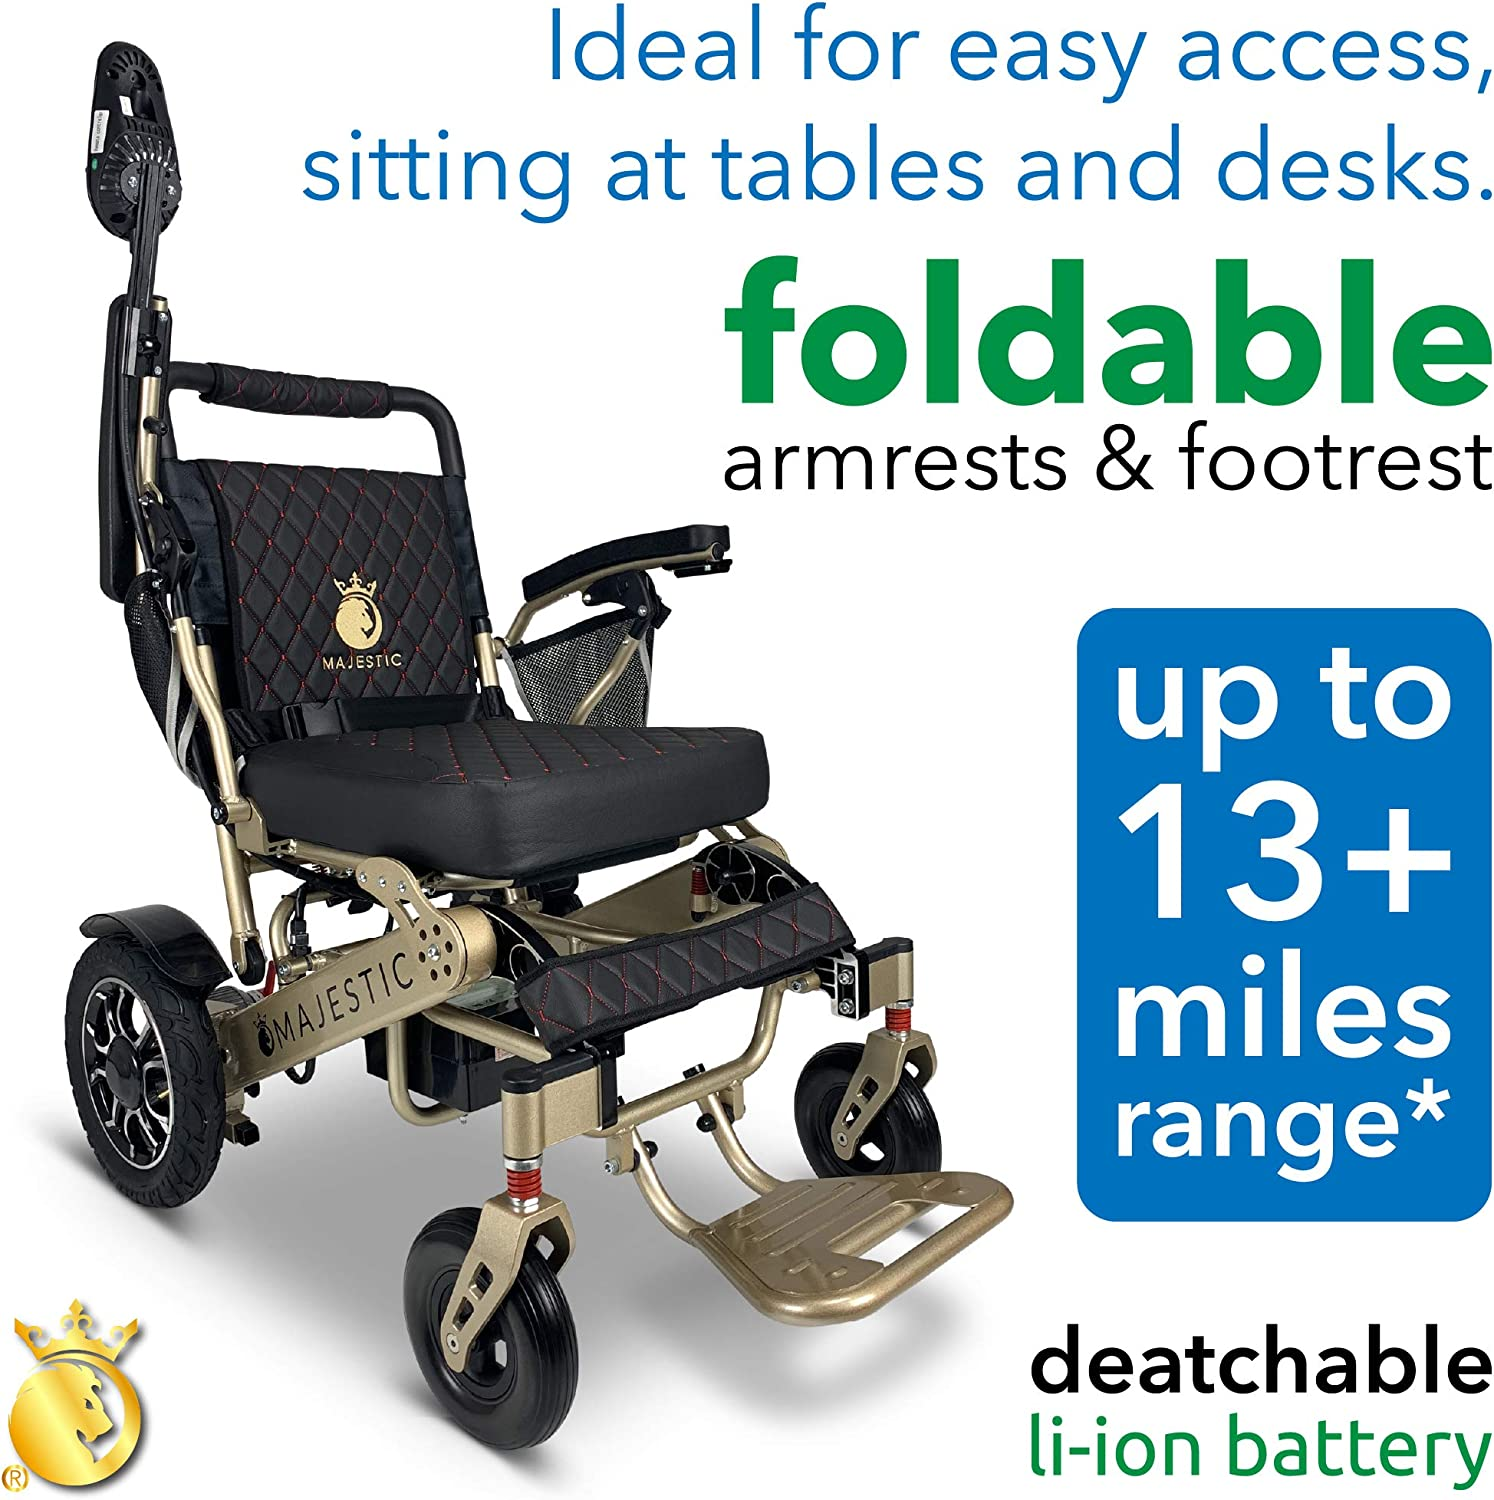 """2021 New Folding Ultra Lightweight Electric Power Wheelchair, Silla de Ruedas Electrica, Airline Approved and Air Travel Allowed, Heavy Duty, Mobility Motorized, Portable Power (19.5"""" Seat Width): Health & Personal Care"""